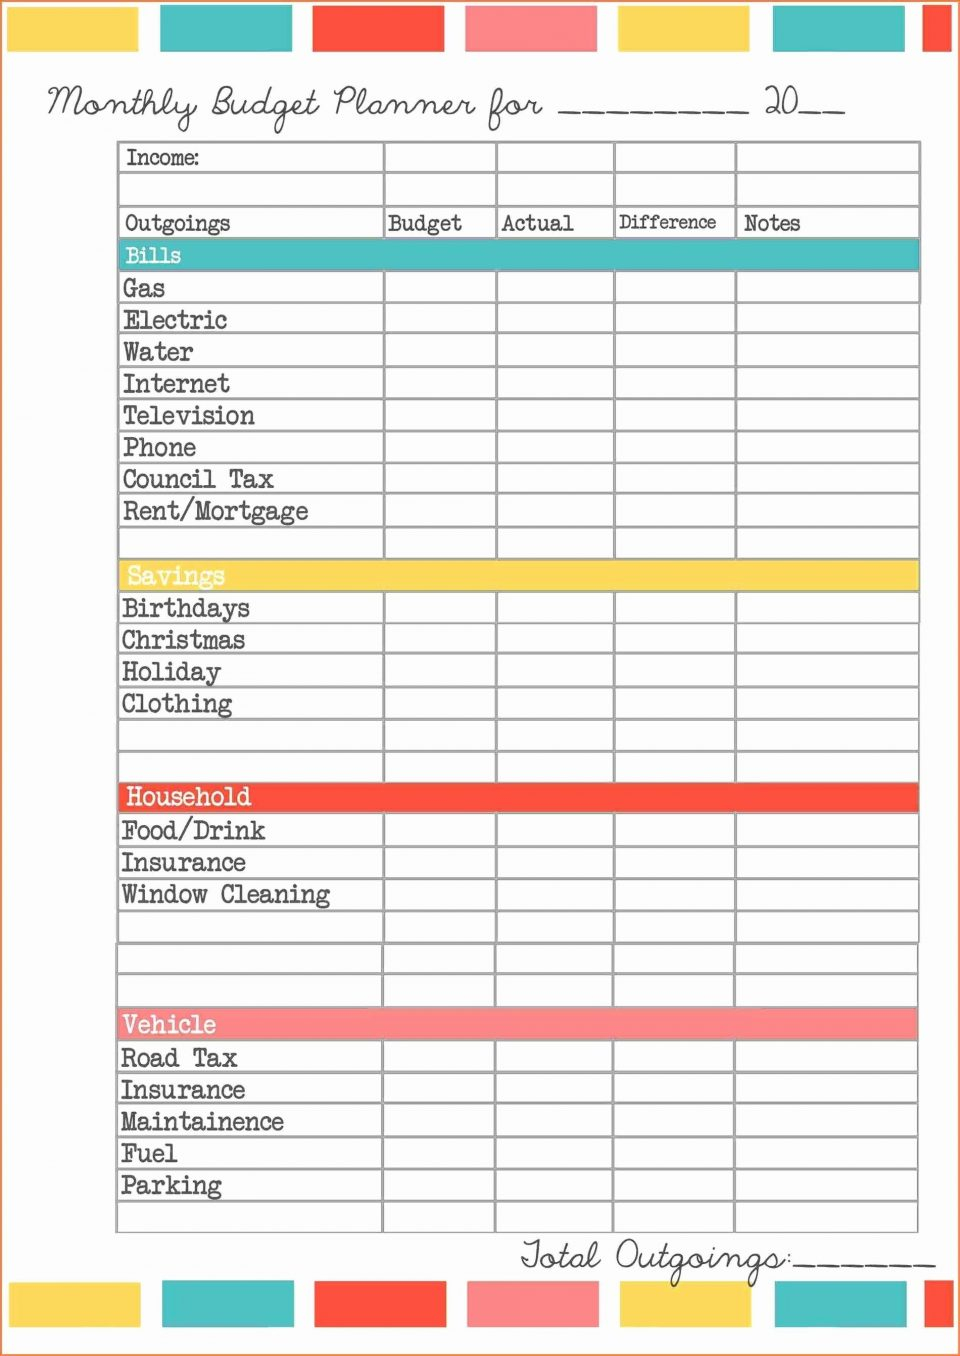 Spreadsheet Accounting Templates For Small Business Free Downloads Inside Basic Bookkeeping Spreadsheet Free Download